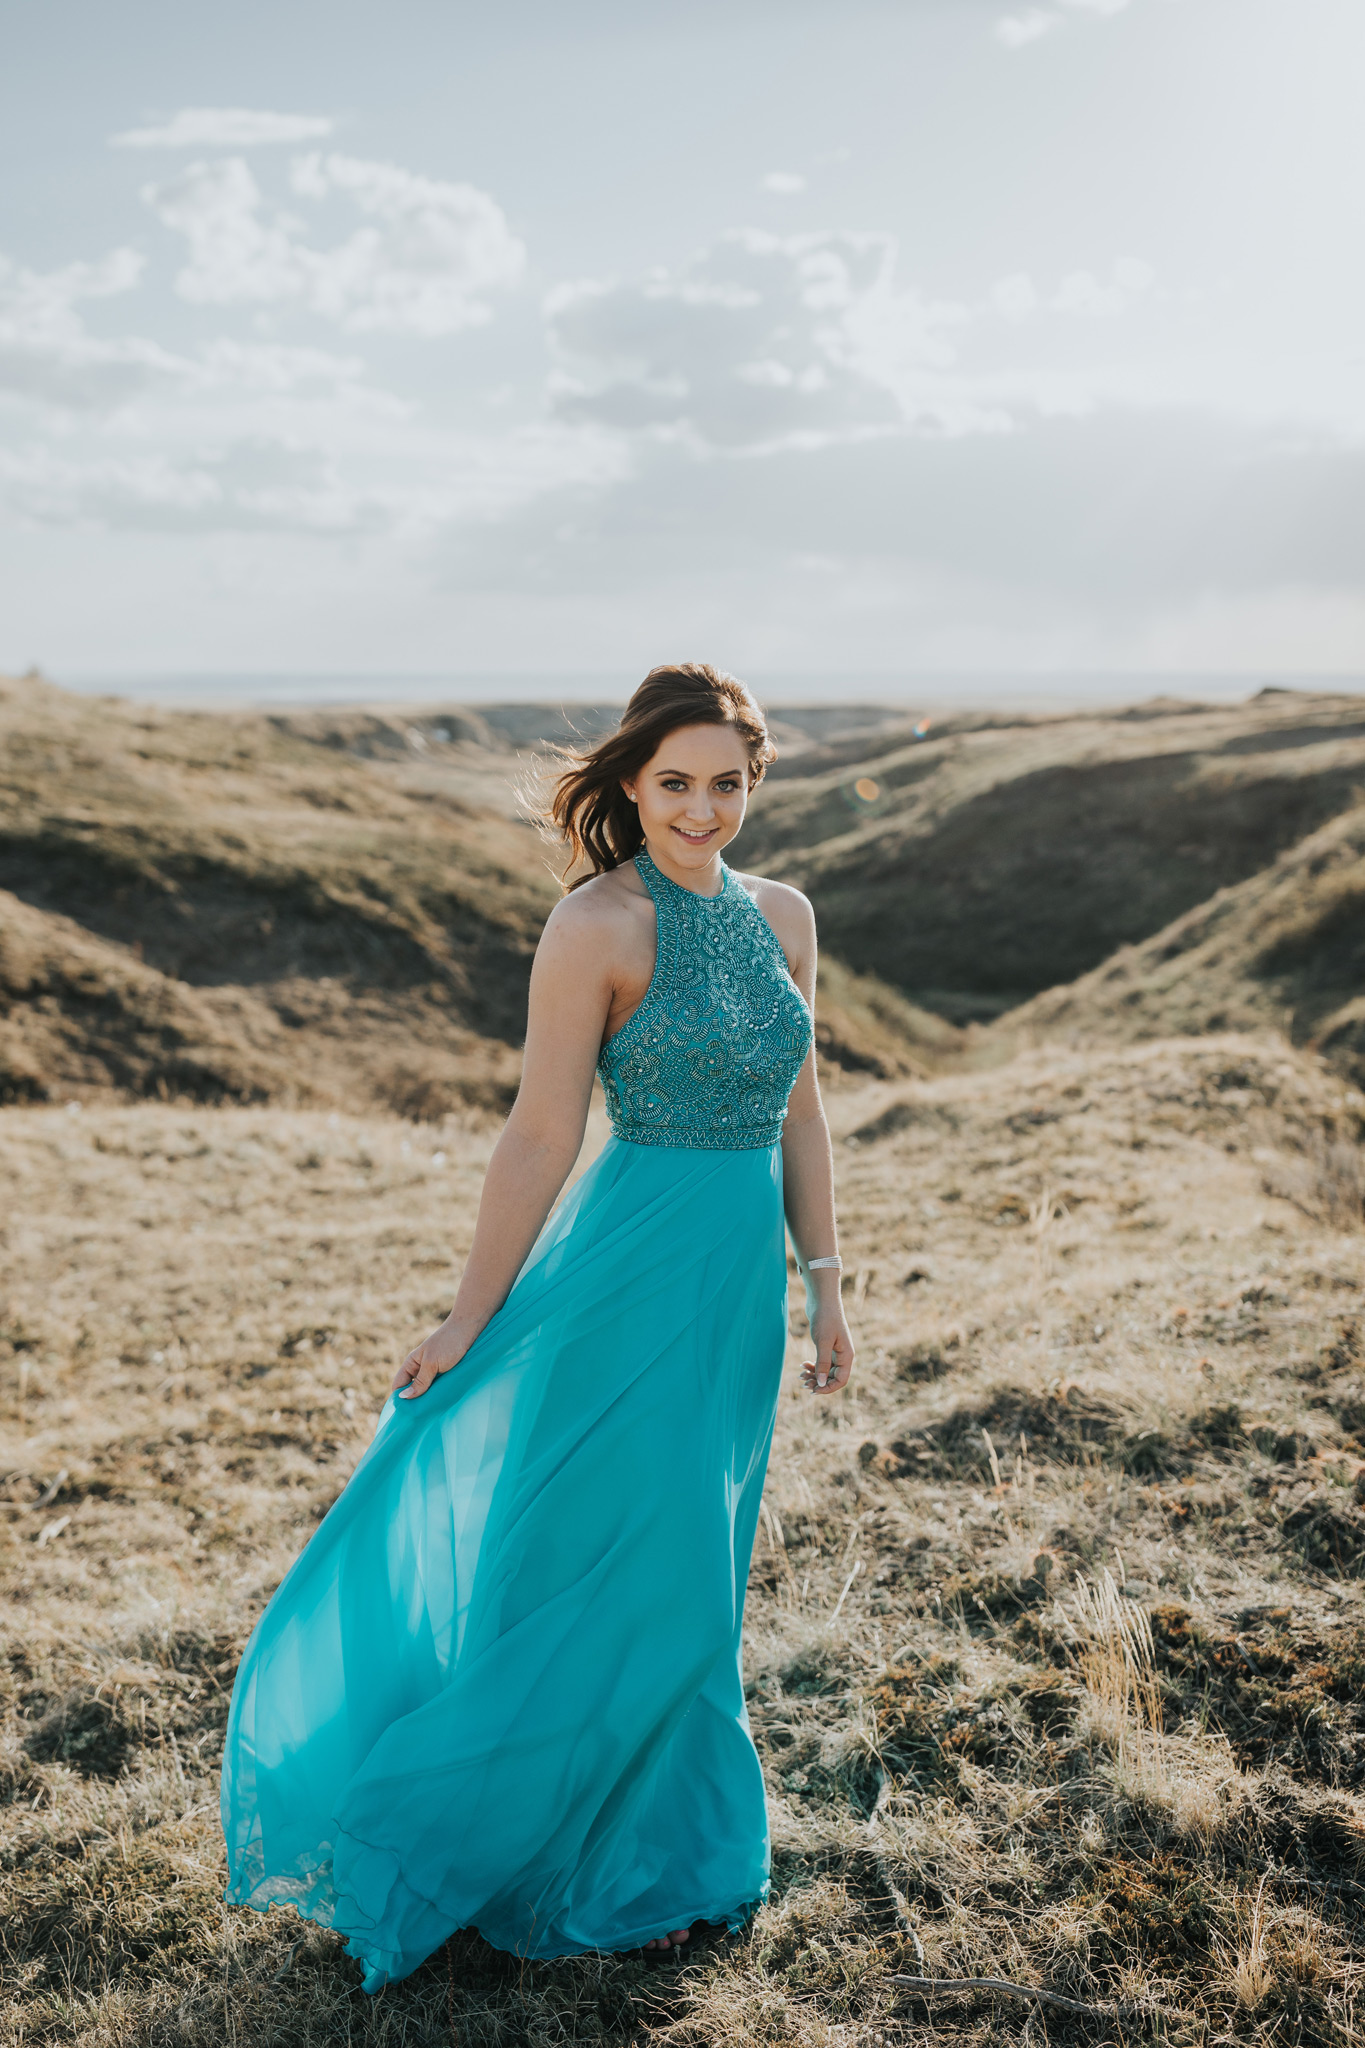 grad girl smiling holding dress as wind blows